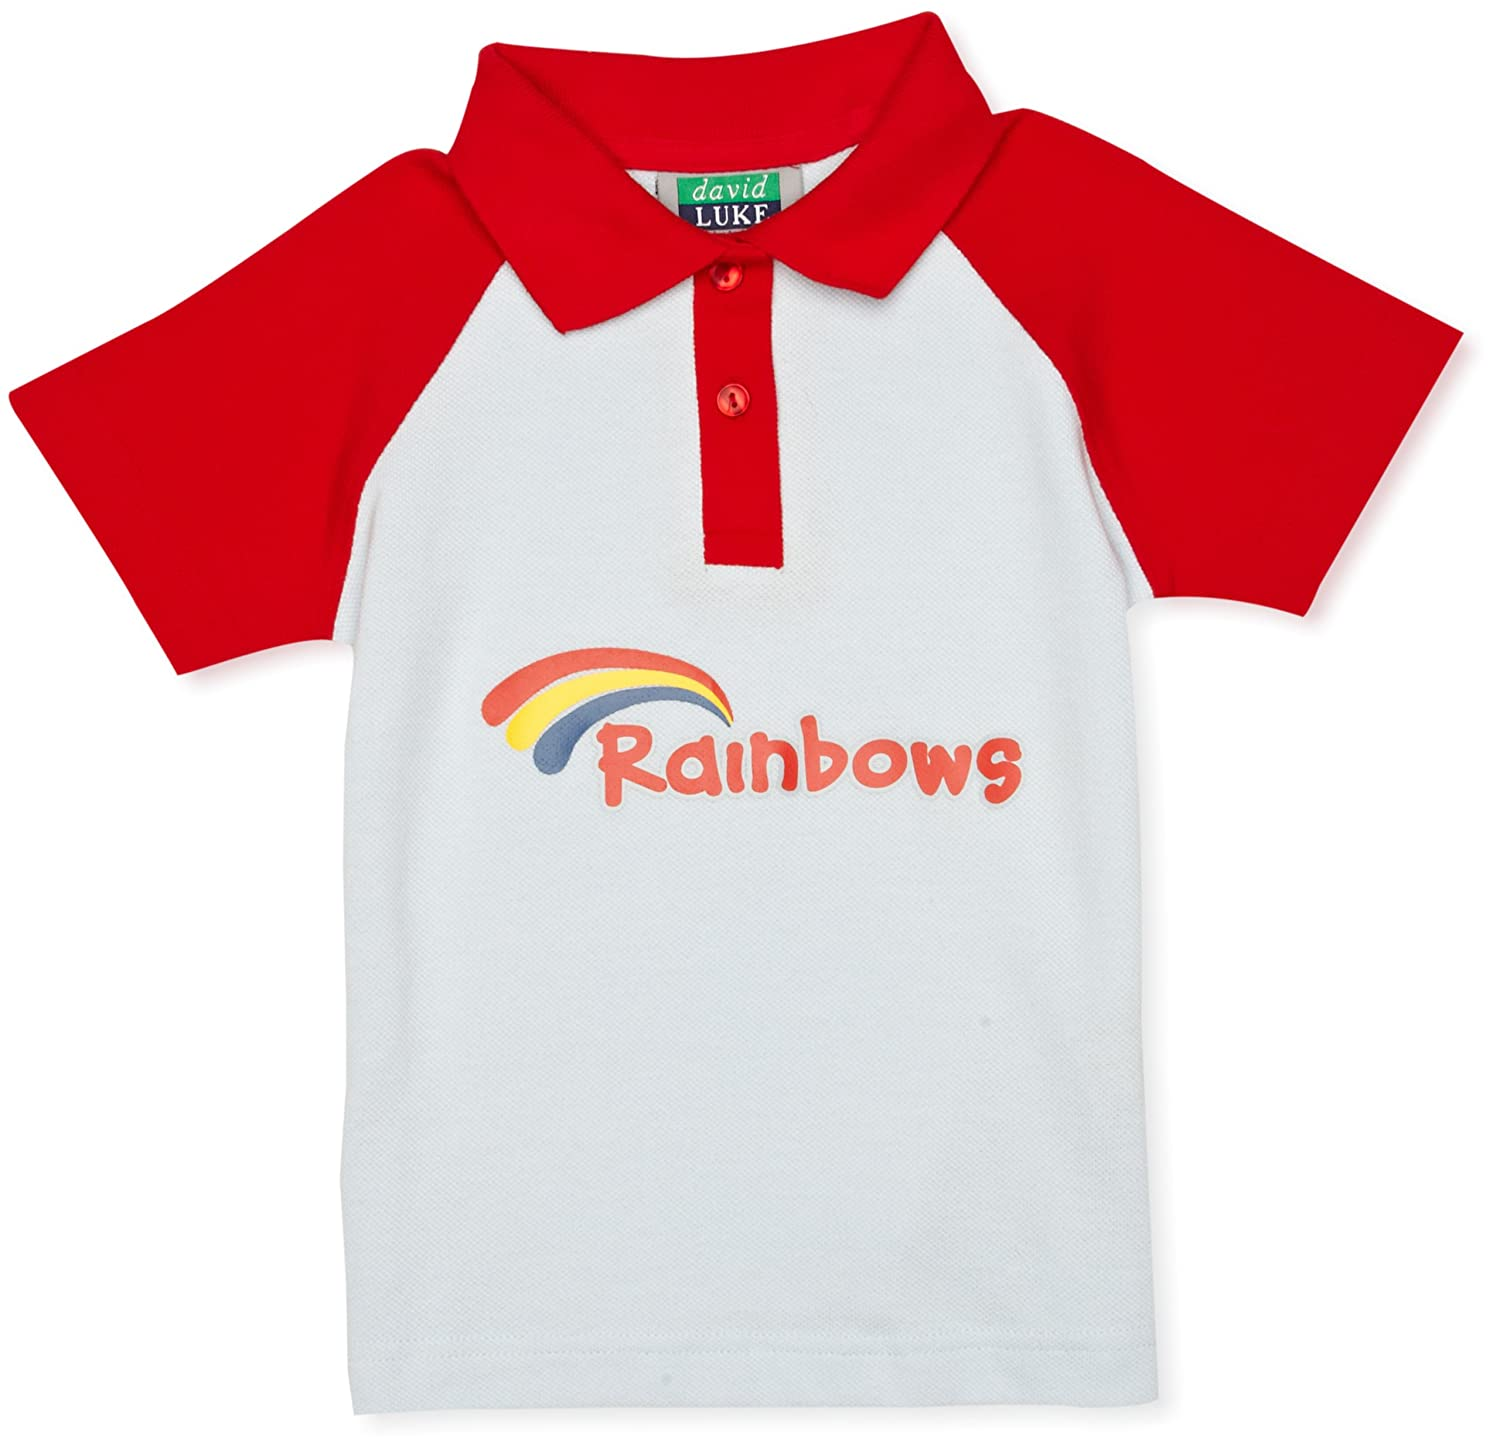 Rainbows Girl's Polo Shirt Rainbow Polo Shirt